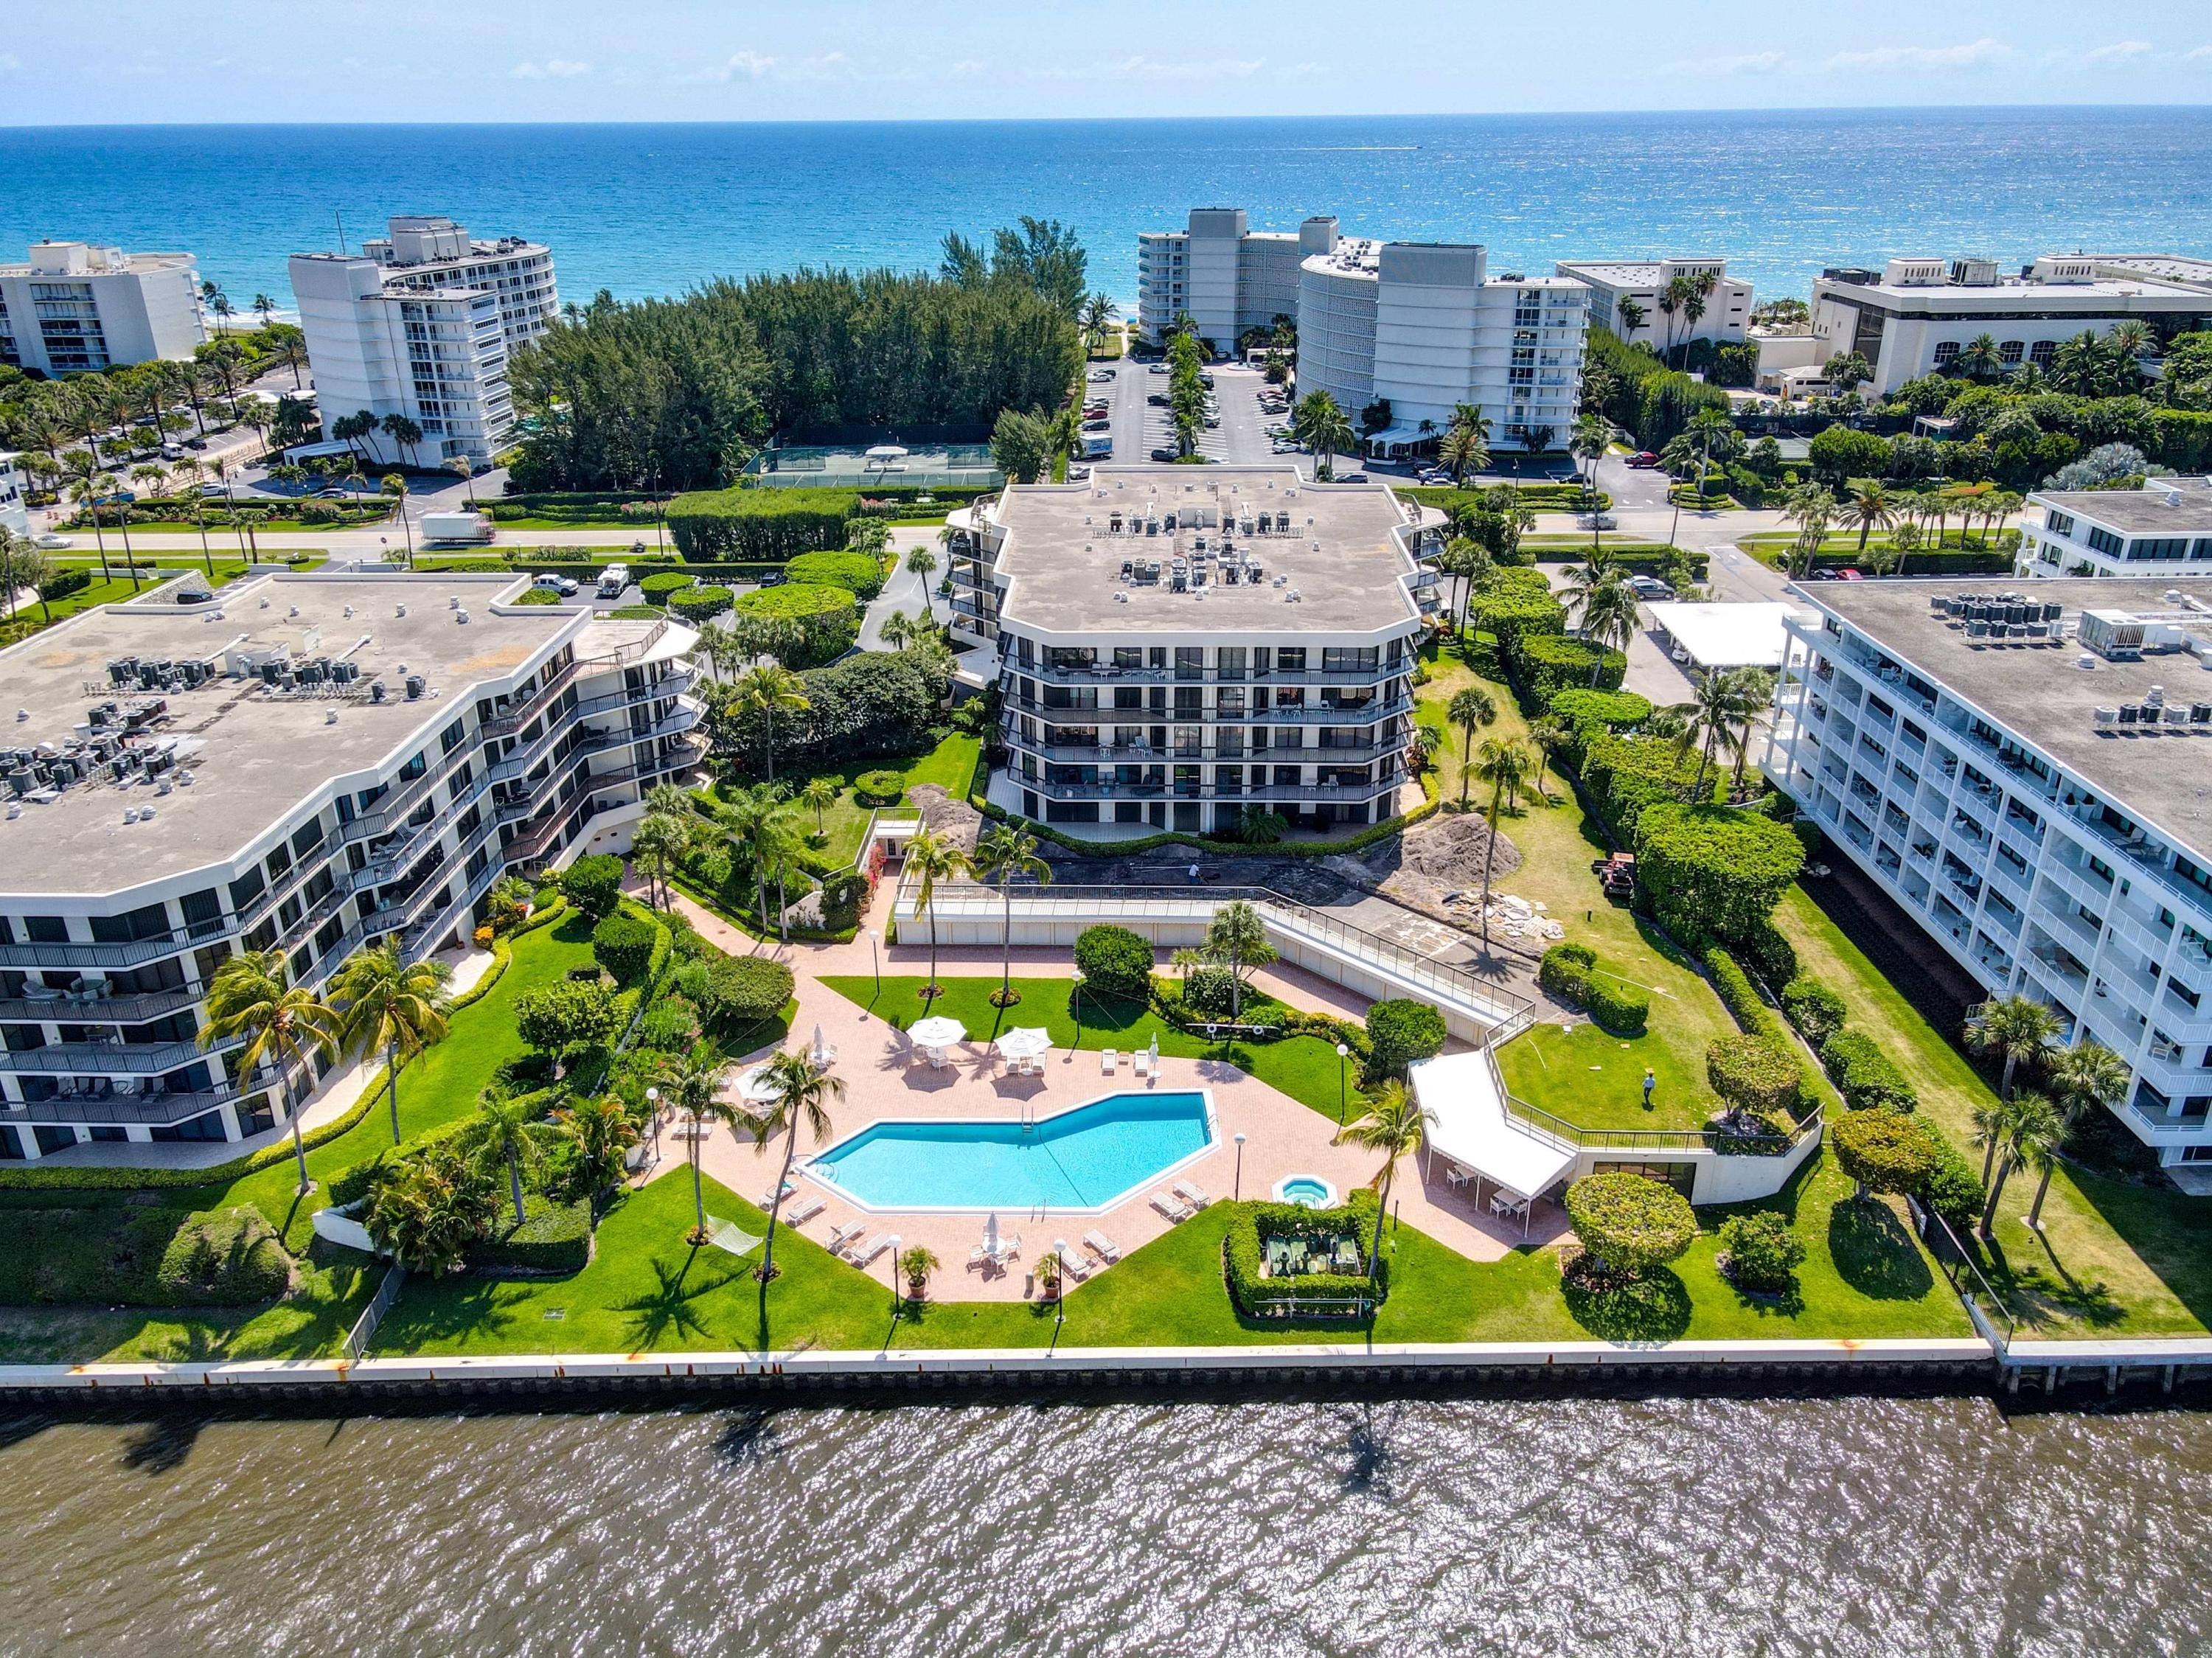 Sutton Place is a very desirable Intracoastal building in Palm Beach with garage parking, 24 hour doorman service and all new gym, clubhouse, hallways and lobbies. The deeded beach access is private and the beaches at this location are wide. Enjoy the bike/walking path along the waterfront and AIA. The newly renovated Palm Beach Par 3 Golf Course and oceanfront restaurant are exceptional, as are the new Publix grocery store and shopping center. 306S is a 2 bedroom/ 2 bath unit . Great value with new kitchen and well maintained space. Large balcony with views of the water and sunsets. Washer/Dryer in the unit with loads of closet space.  Hallway closet for additional storage and is where the newer AC unit is, keeping the sound of the unit out of the actual condo. One garage parking spot and one outdoor spot. Pool and clubhouse directly on Intracoastal. Great management. Great value...Don't miss this opportunity!!